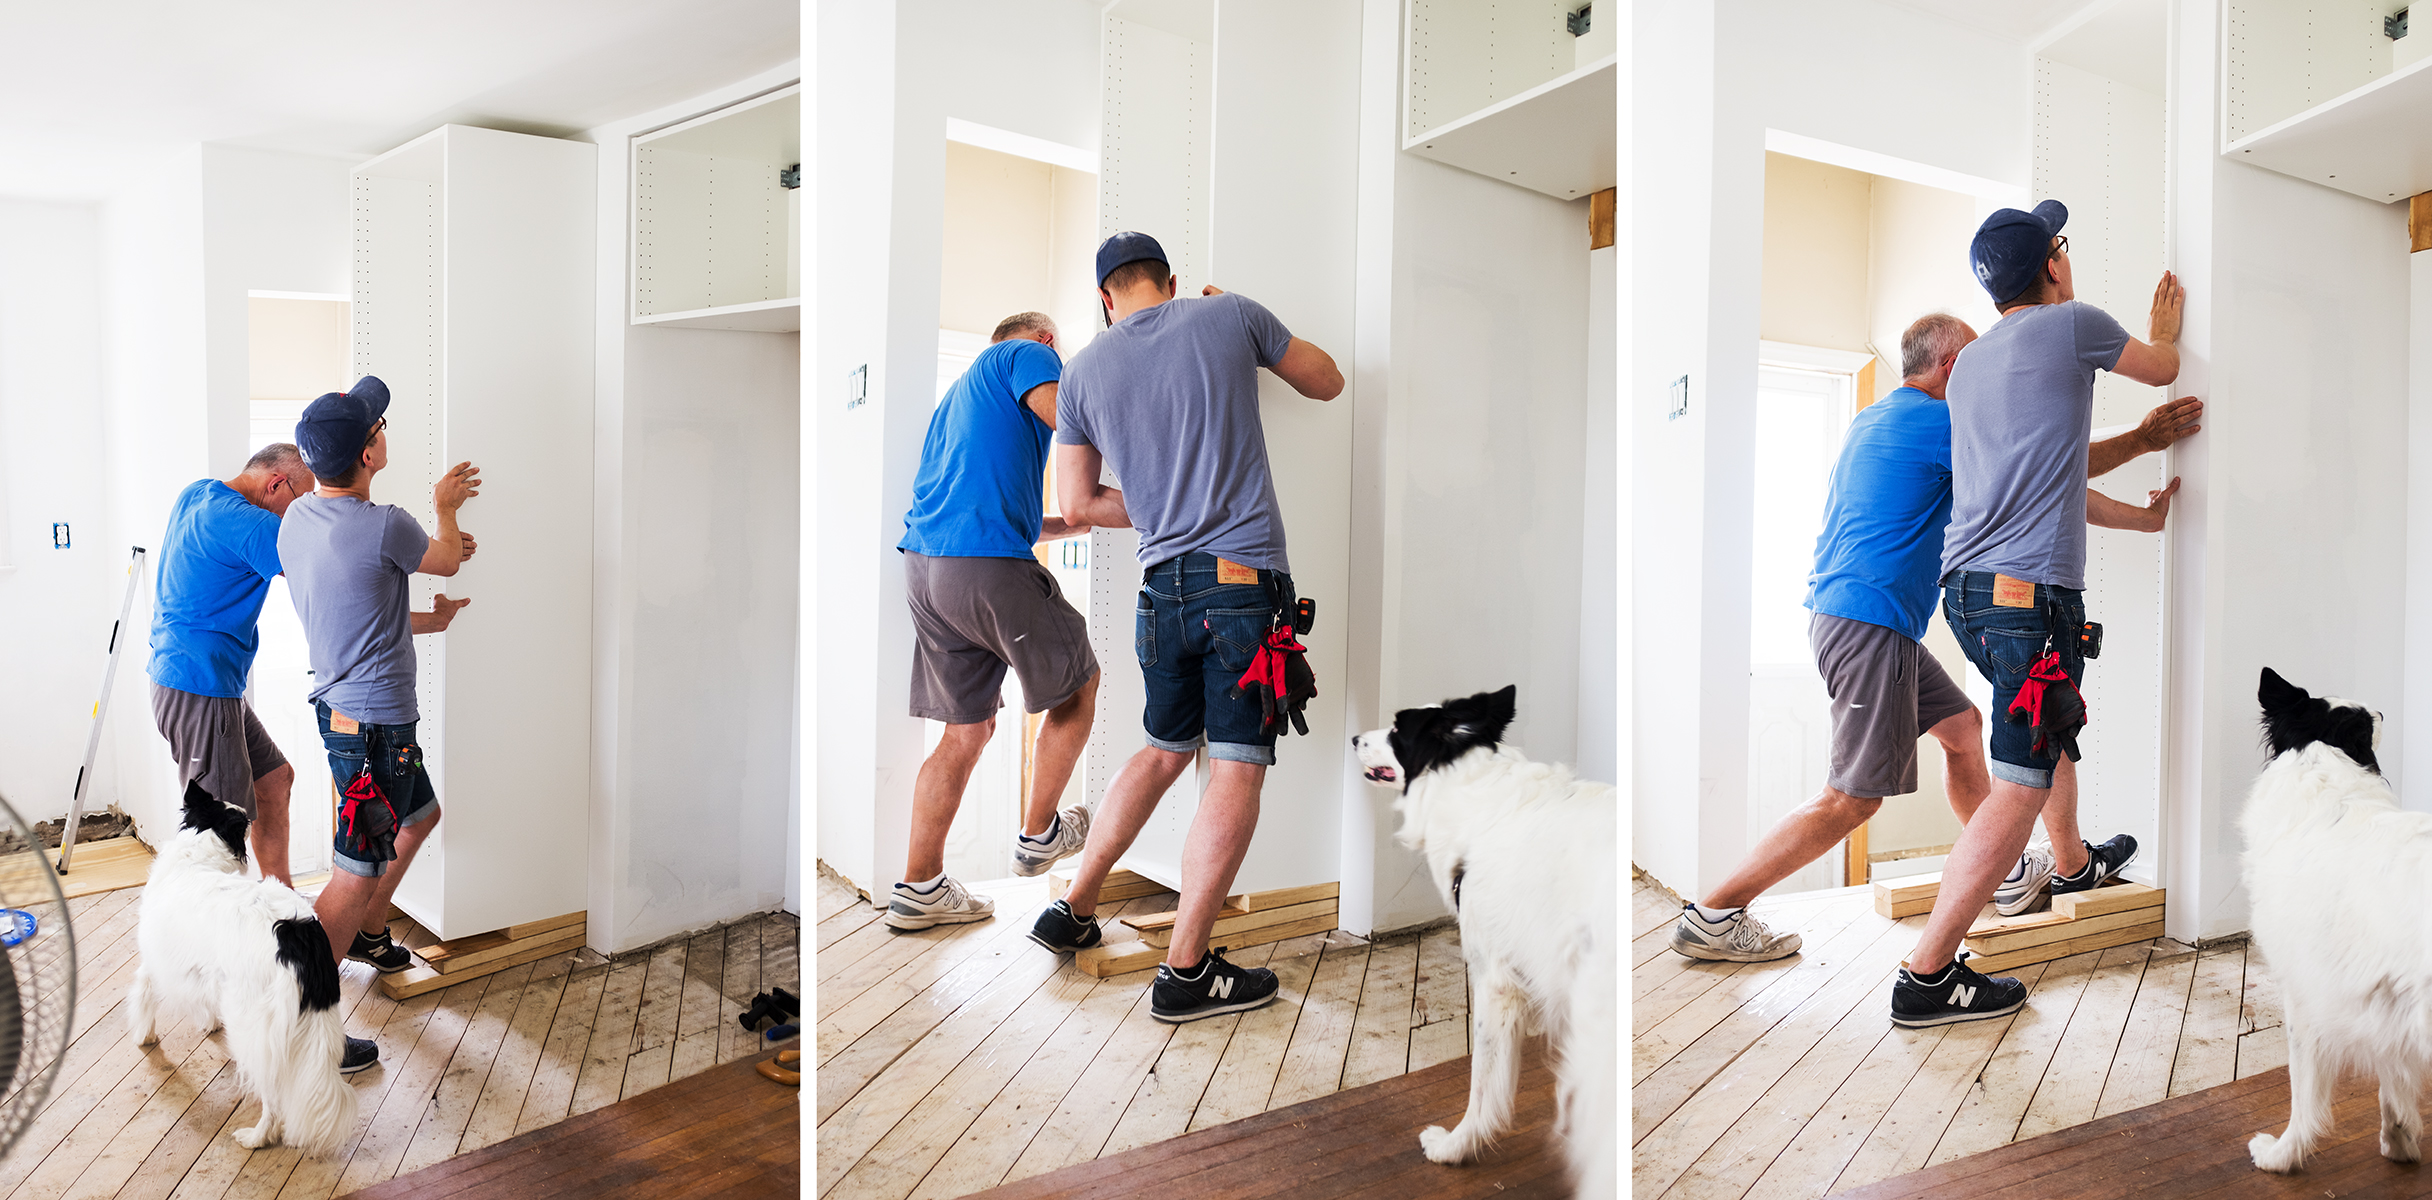 pantry installation ! this used to be the guest bedroom closet, we flipped it to give our tiny kitchen more storage.